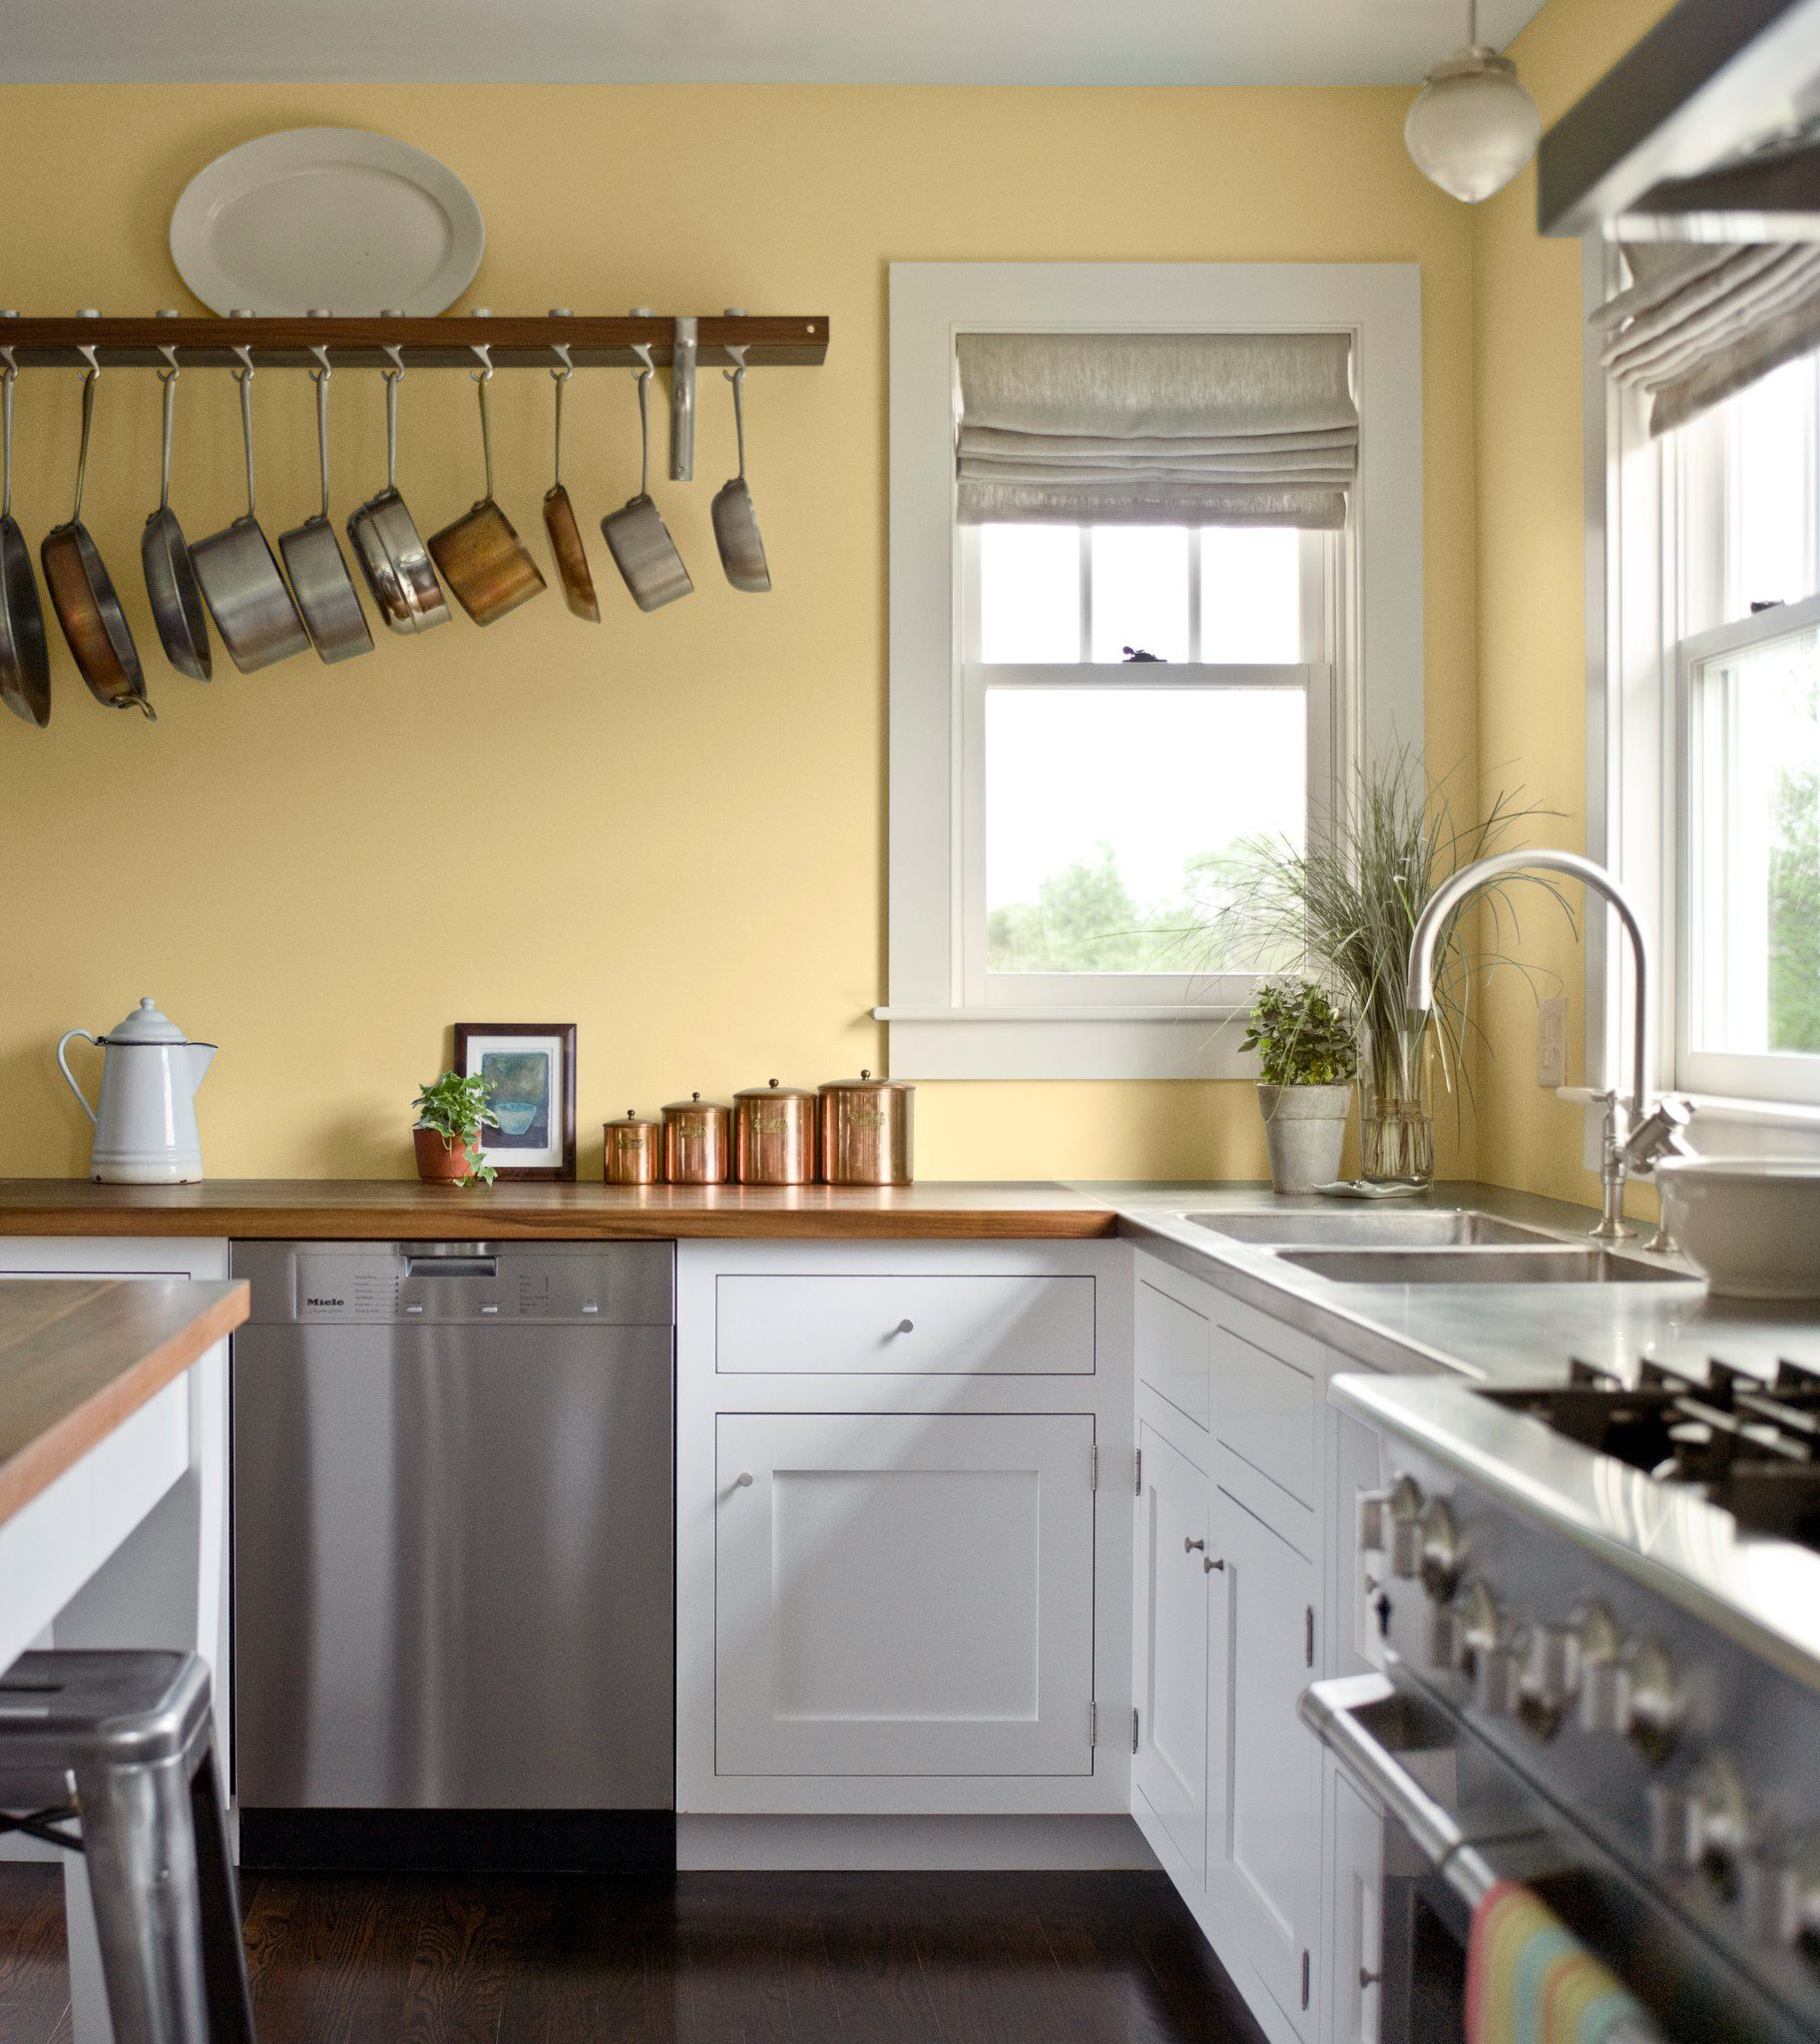 Pale yellow walls, white wood counter tops